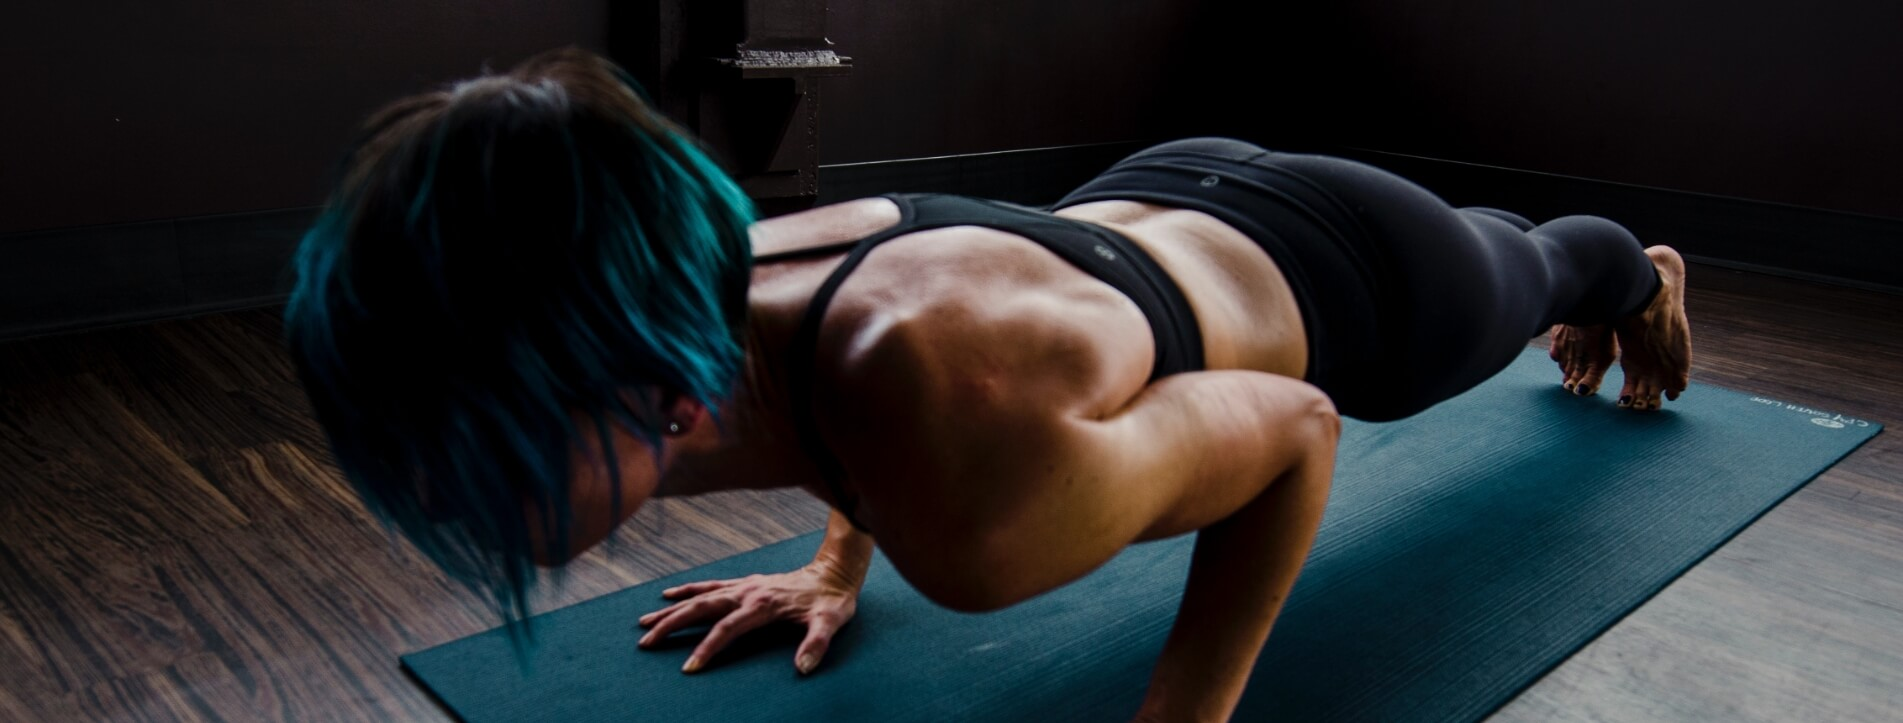 A person doing push-ups